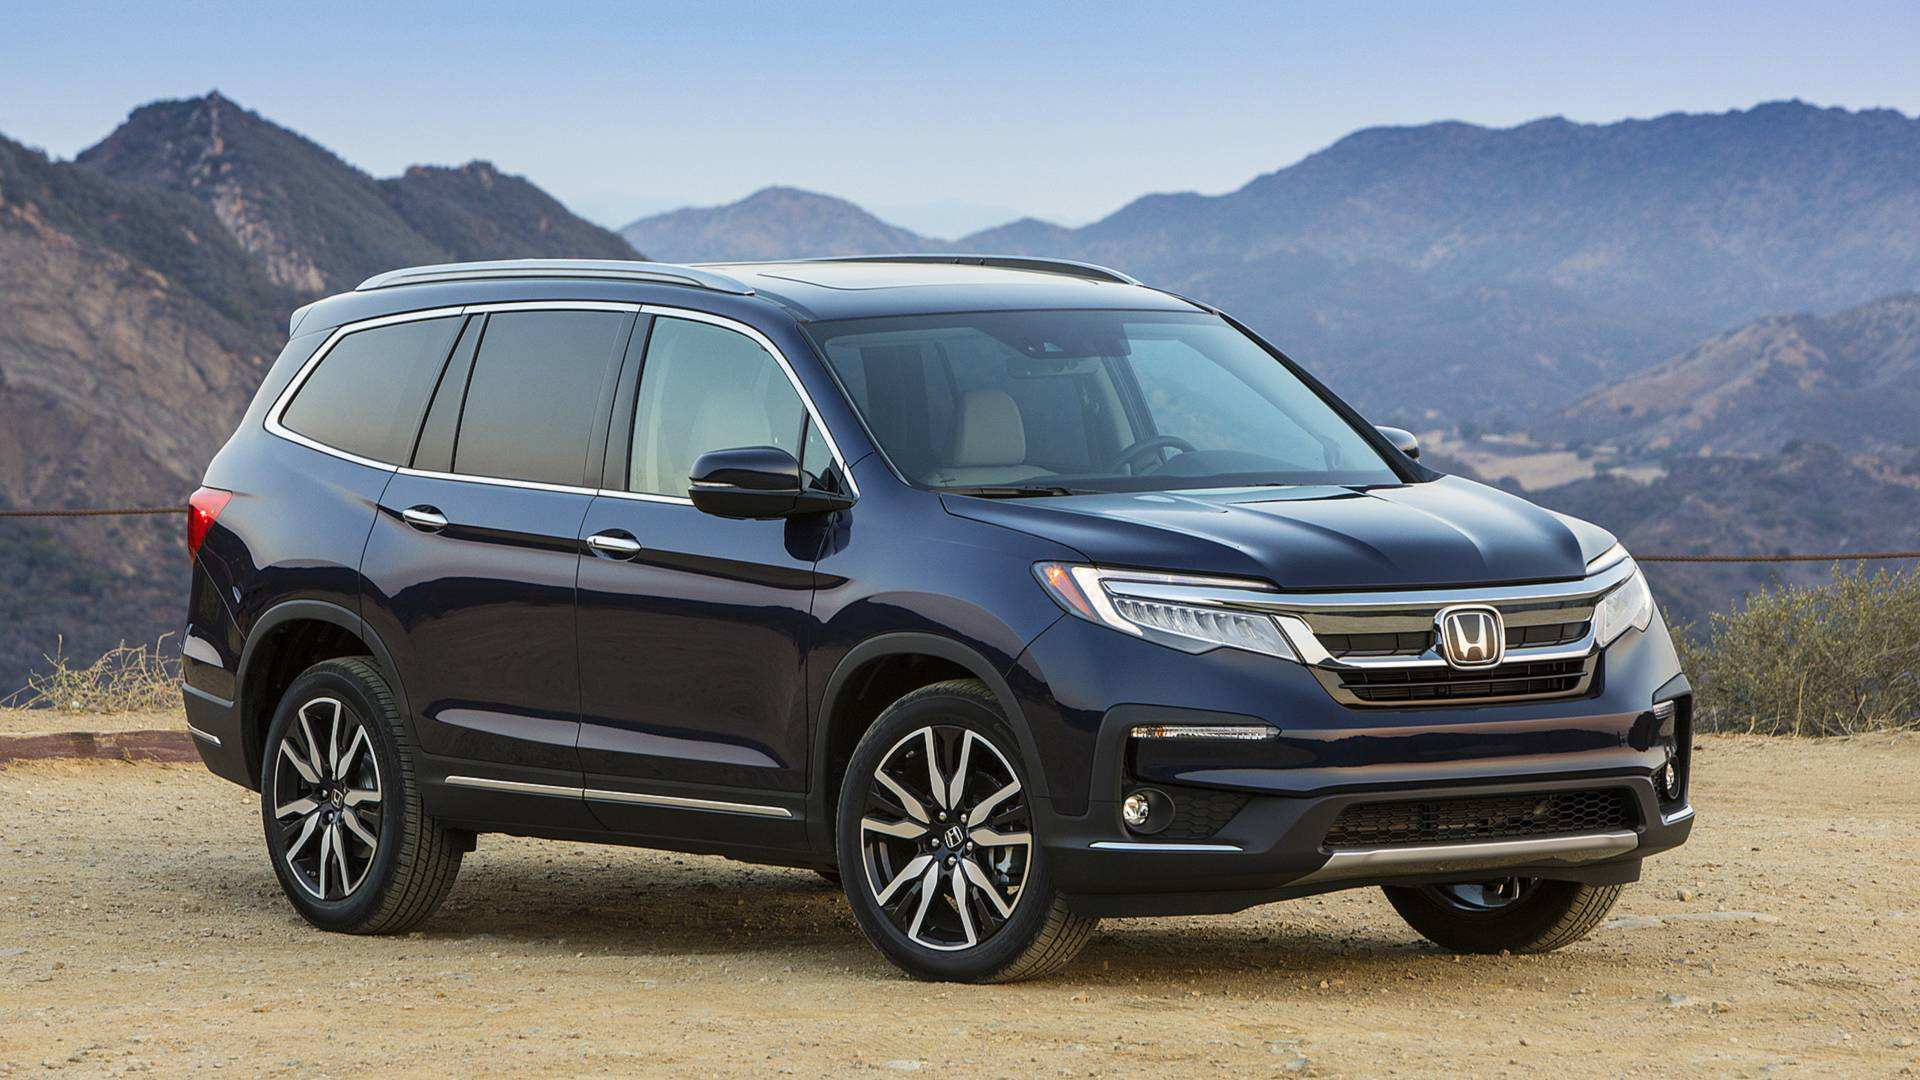 22 Best Review 2020 Honda Pilot Black Edition Ratings for 2020 Honda Pilot Black Edition